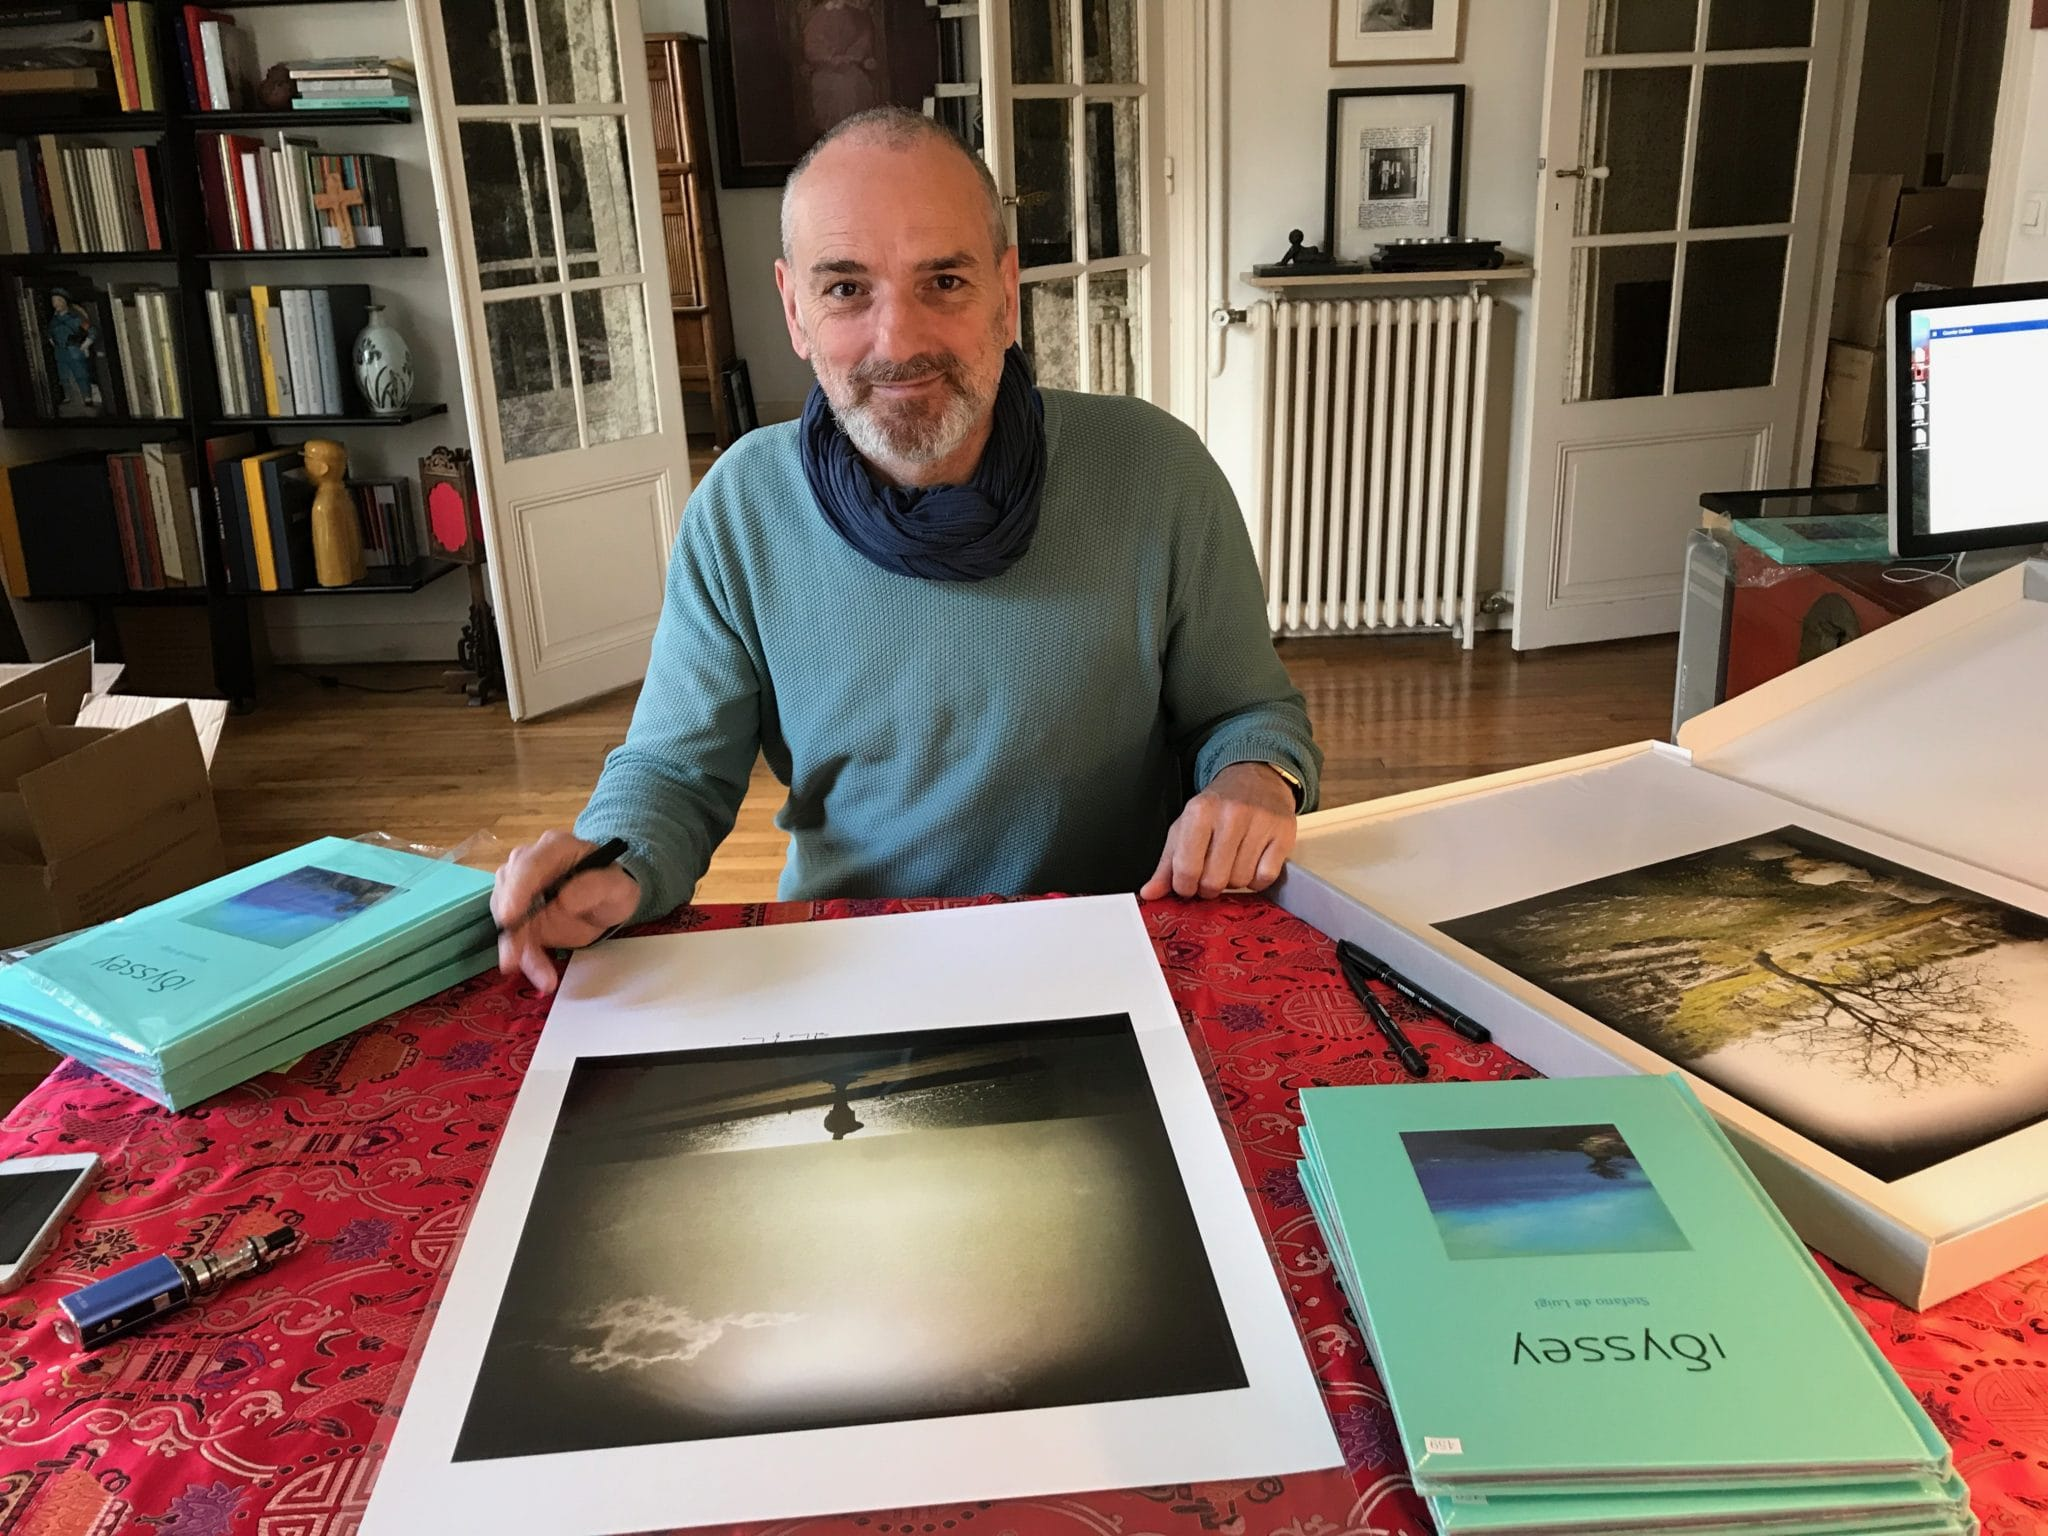 Idyssey by Stefano de Luigi, just arrived this morning, happy publisher, limited edition of 500 copies, signed c print and more… at home this morning